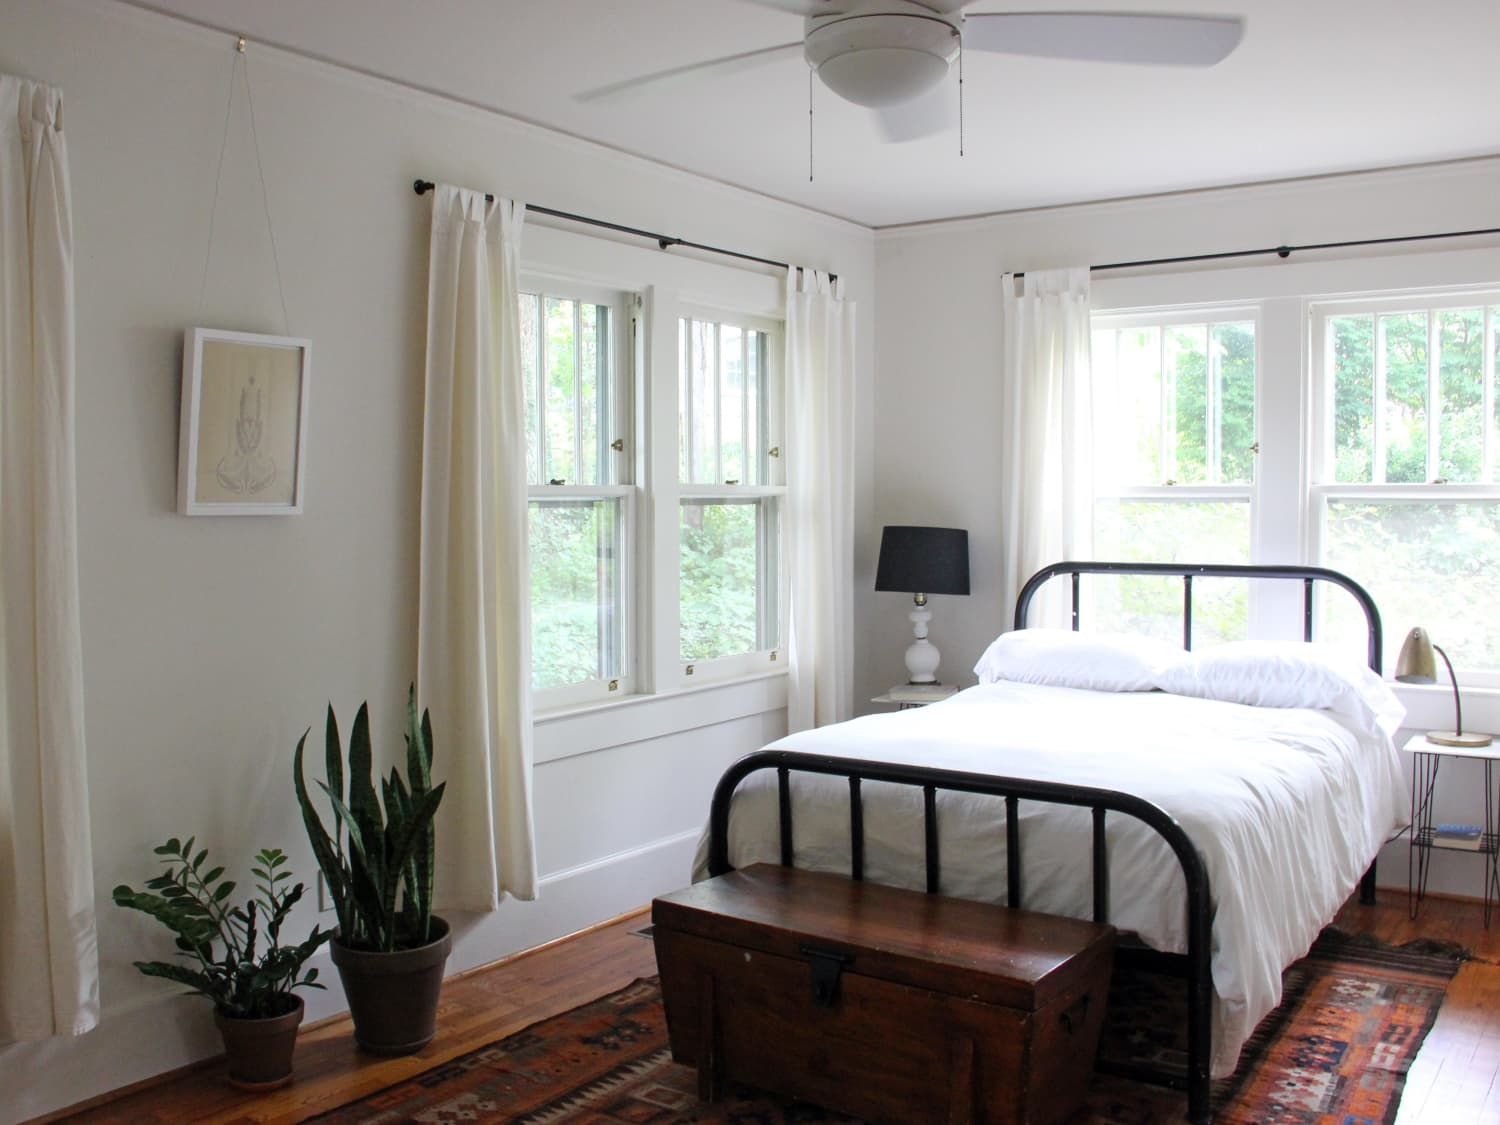 How To Hang Curtains Without Drilling Into Walls Apartment Therapy,What Questions To Ask When Buying A House